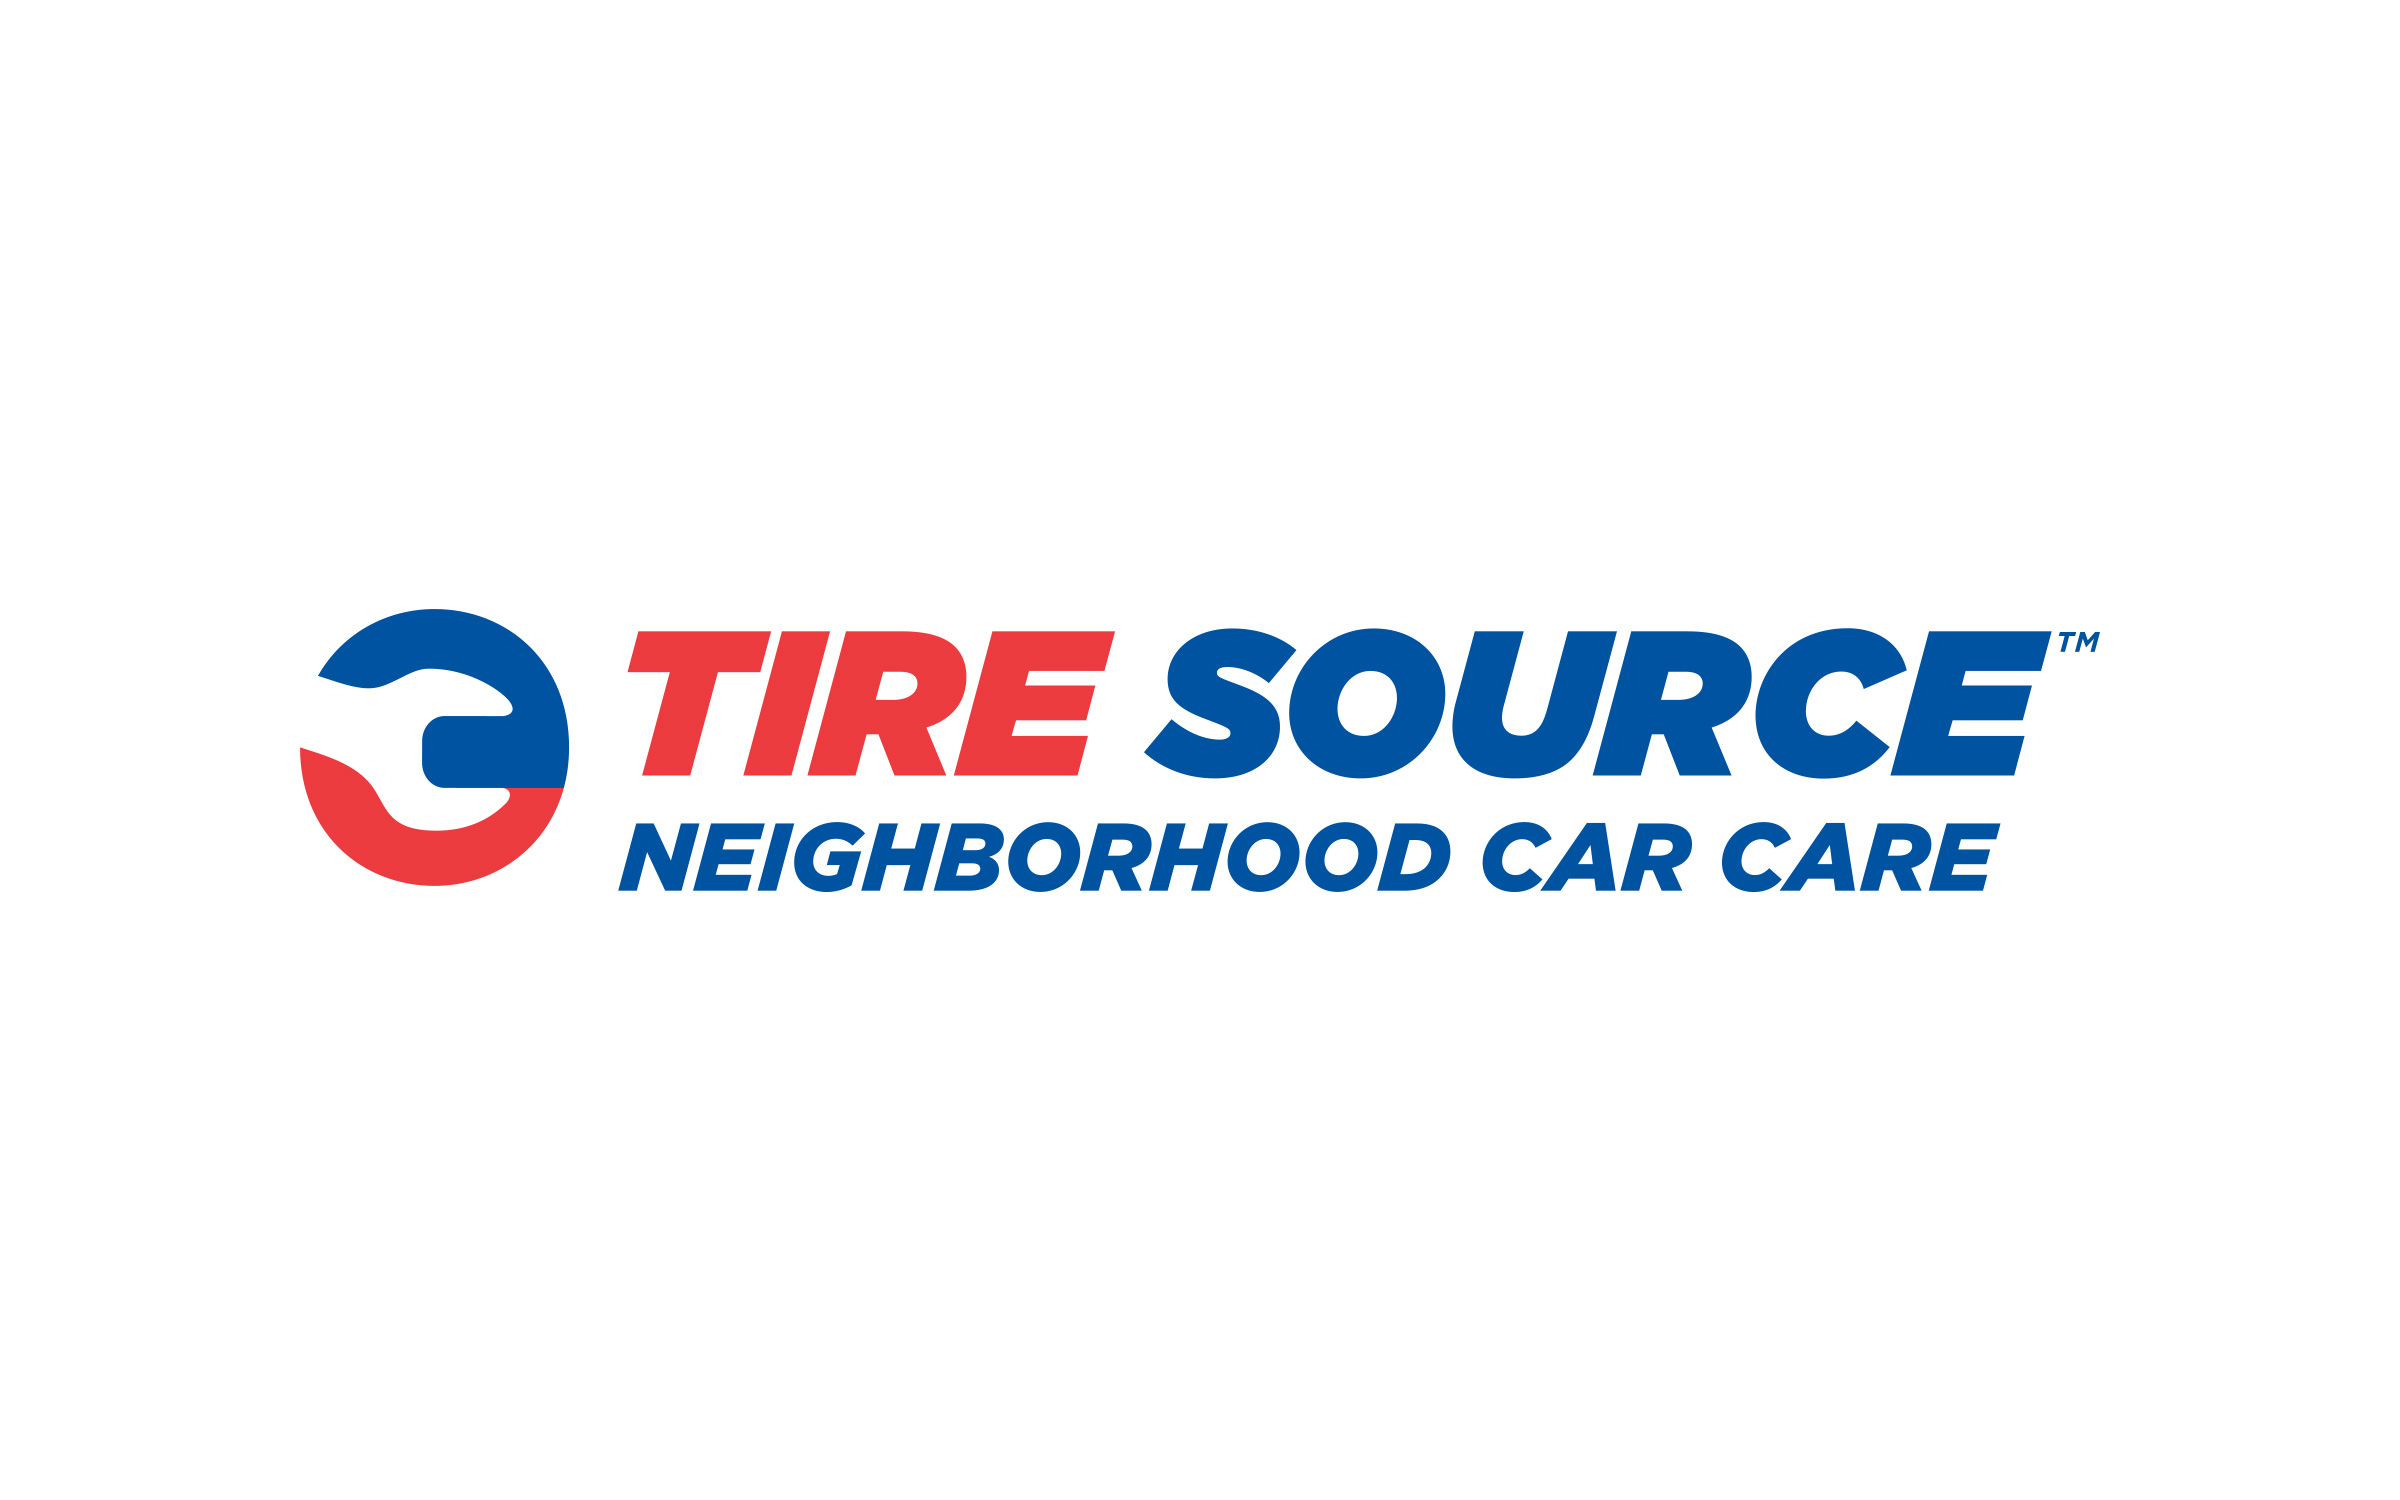 Tire Source